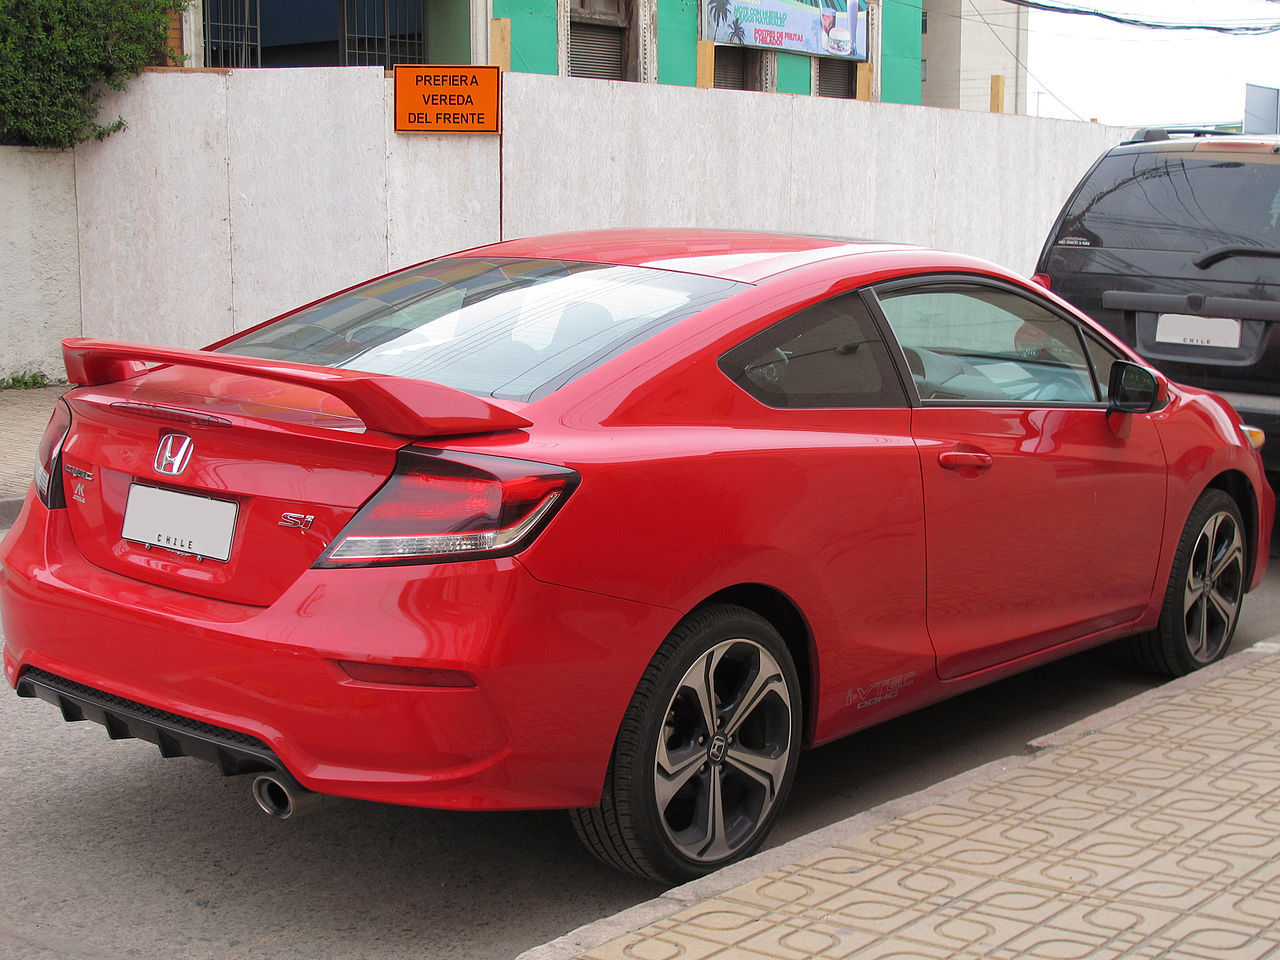 2014 honda civic coupe  | commons.wikimedia.org